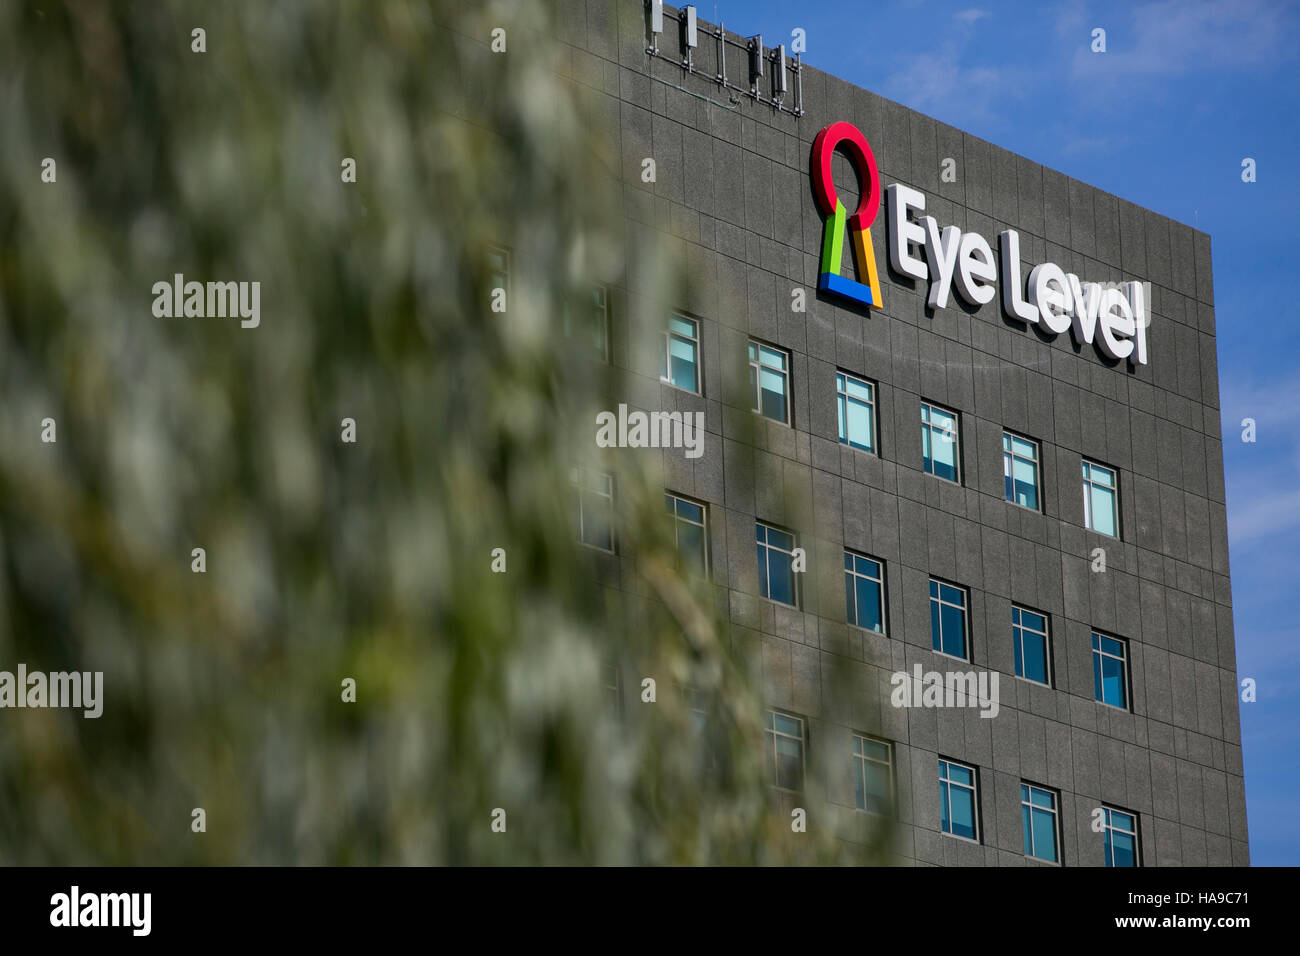 A logo sign outside of a facility occupied by Eye Level Learning in Ridgefield Park, New Jersey on November 5, 2016. - Stock Image